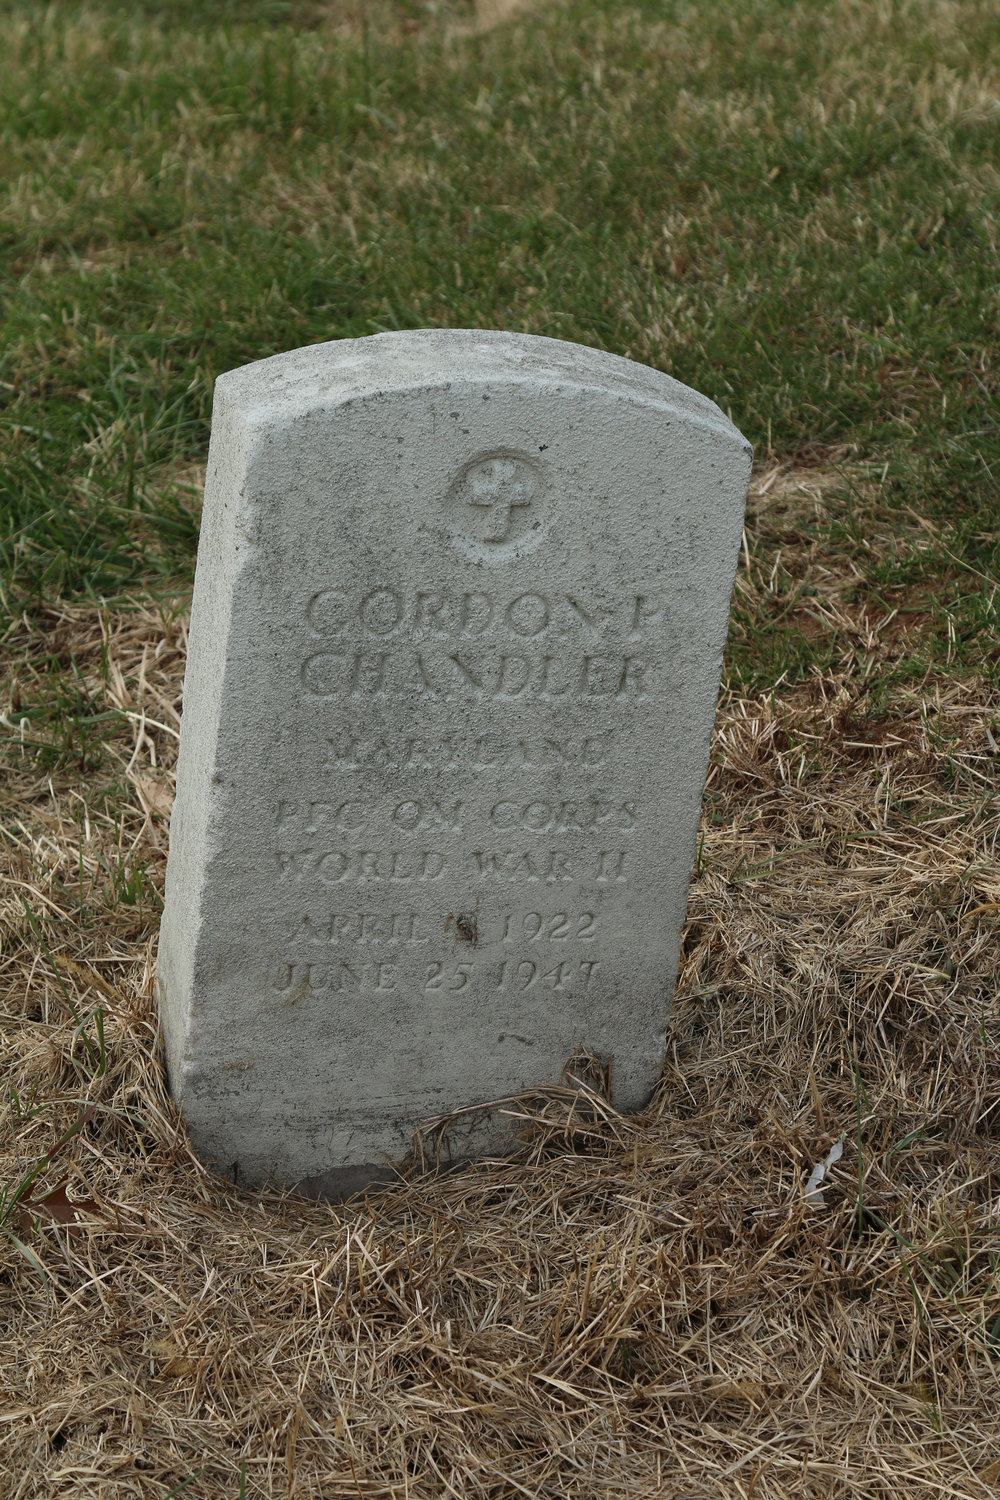 Pfc. Gordon I. Chandler